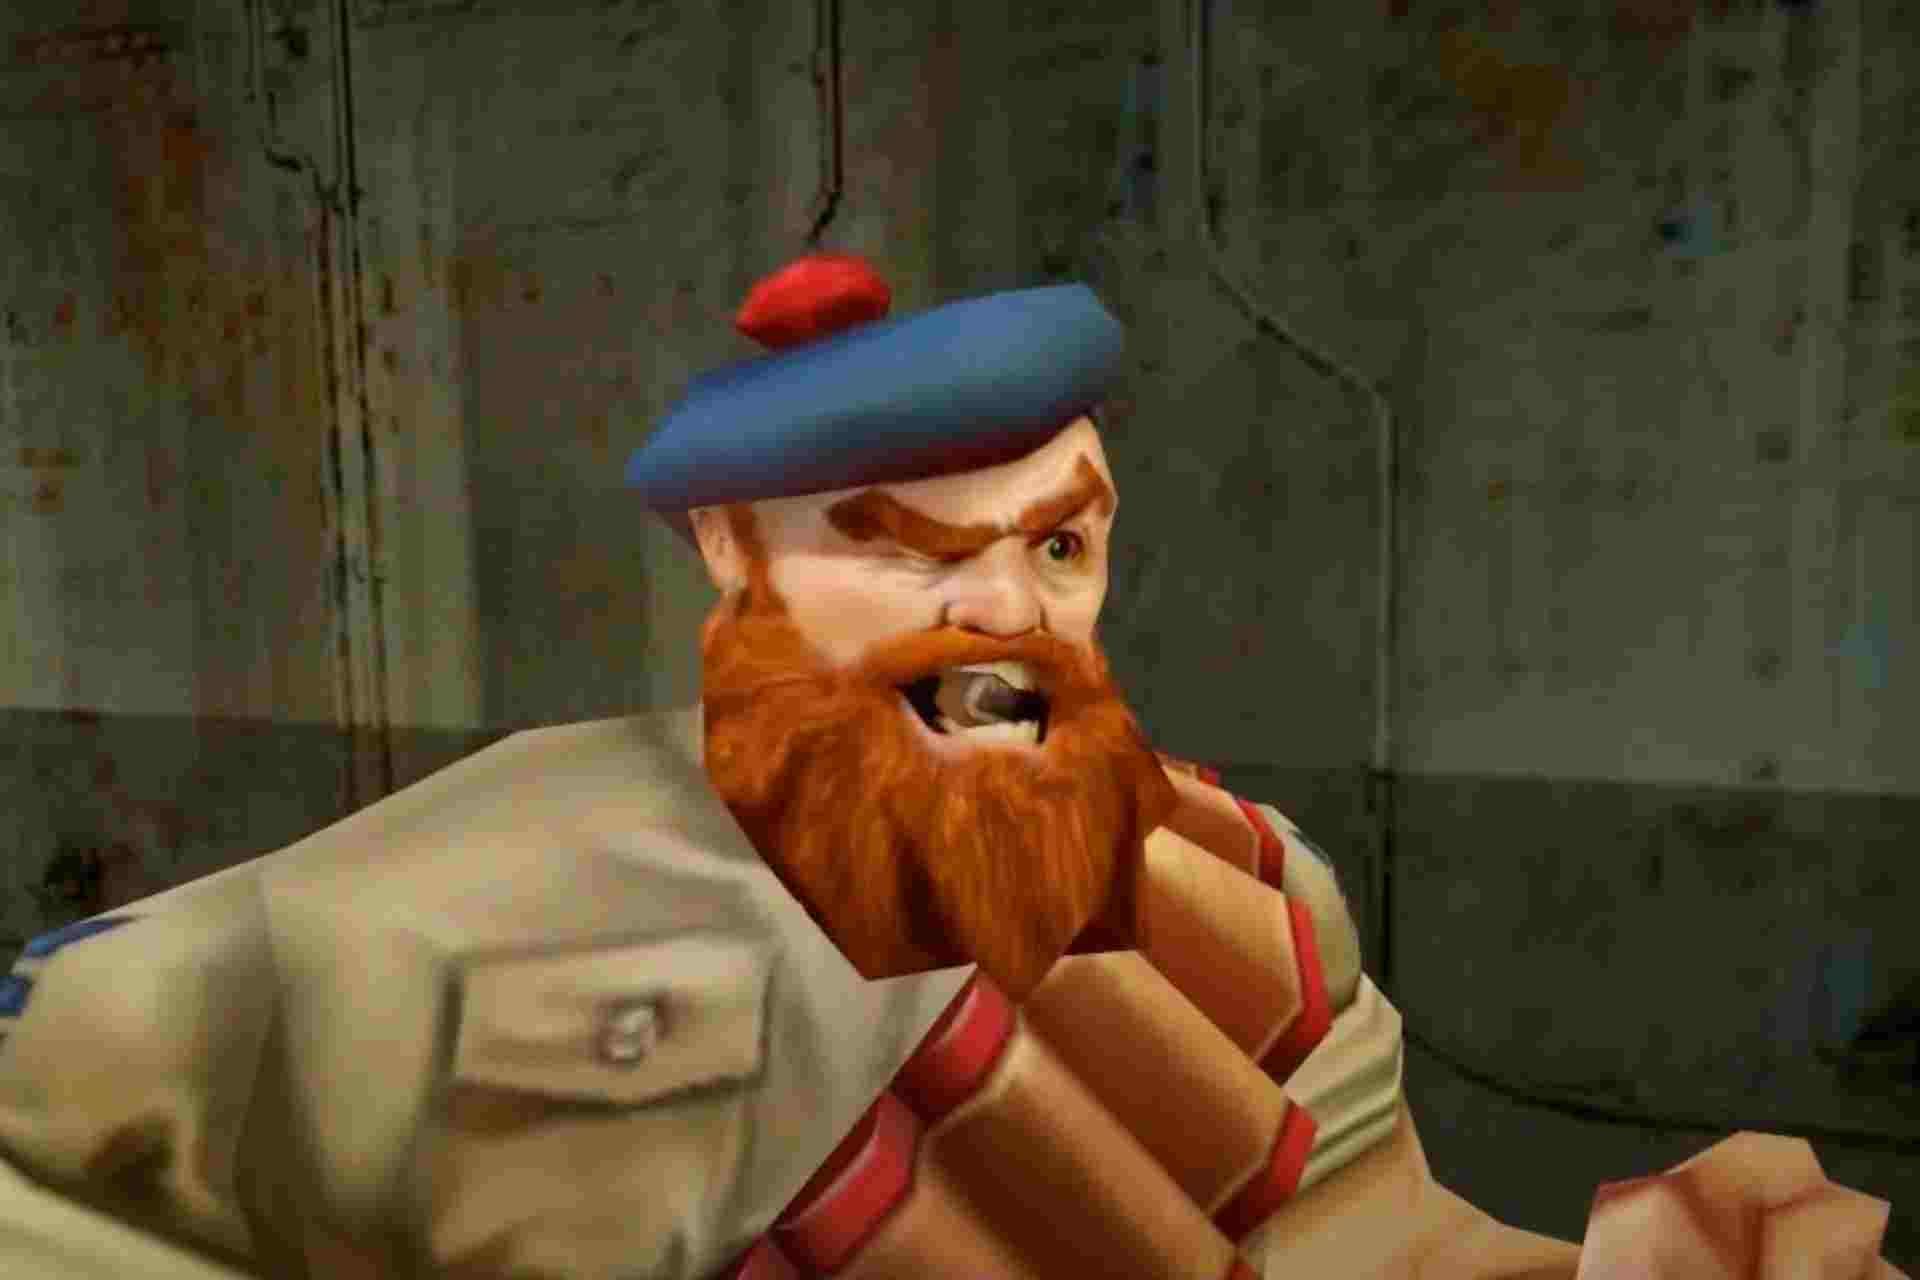 Magnus is a scottish villain in No one lives forever. He spares the life of Cate Archer many times during the game.